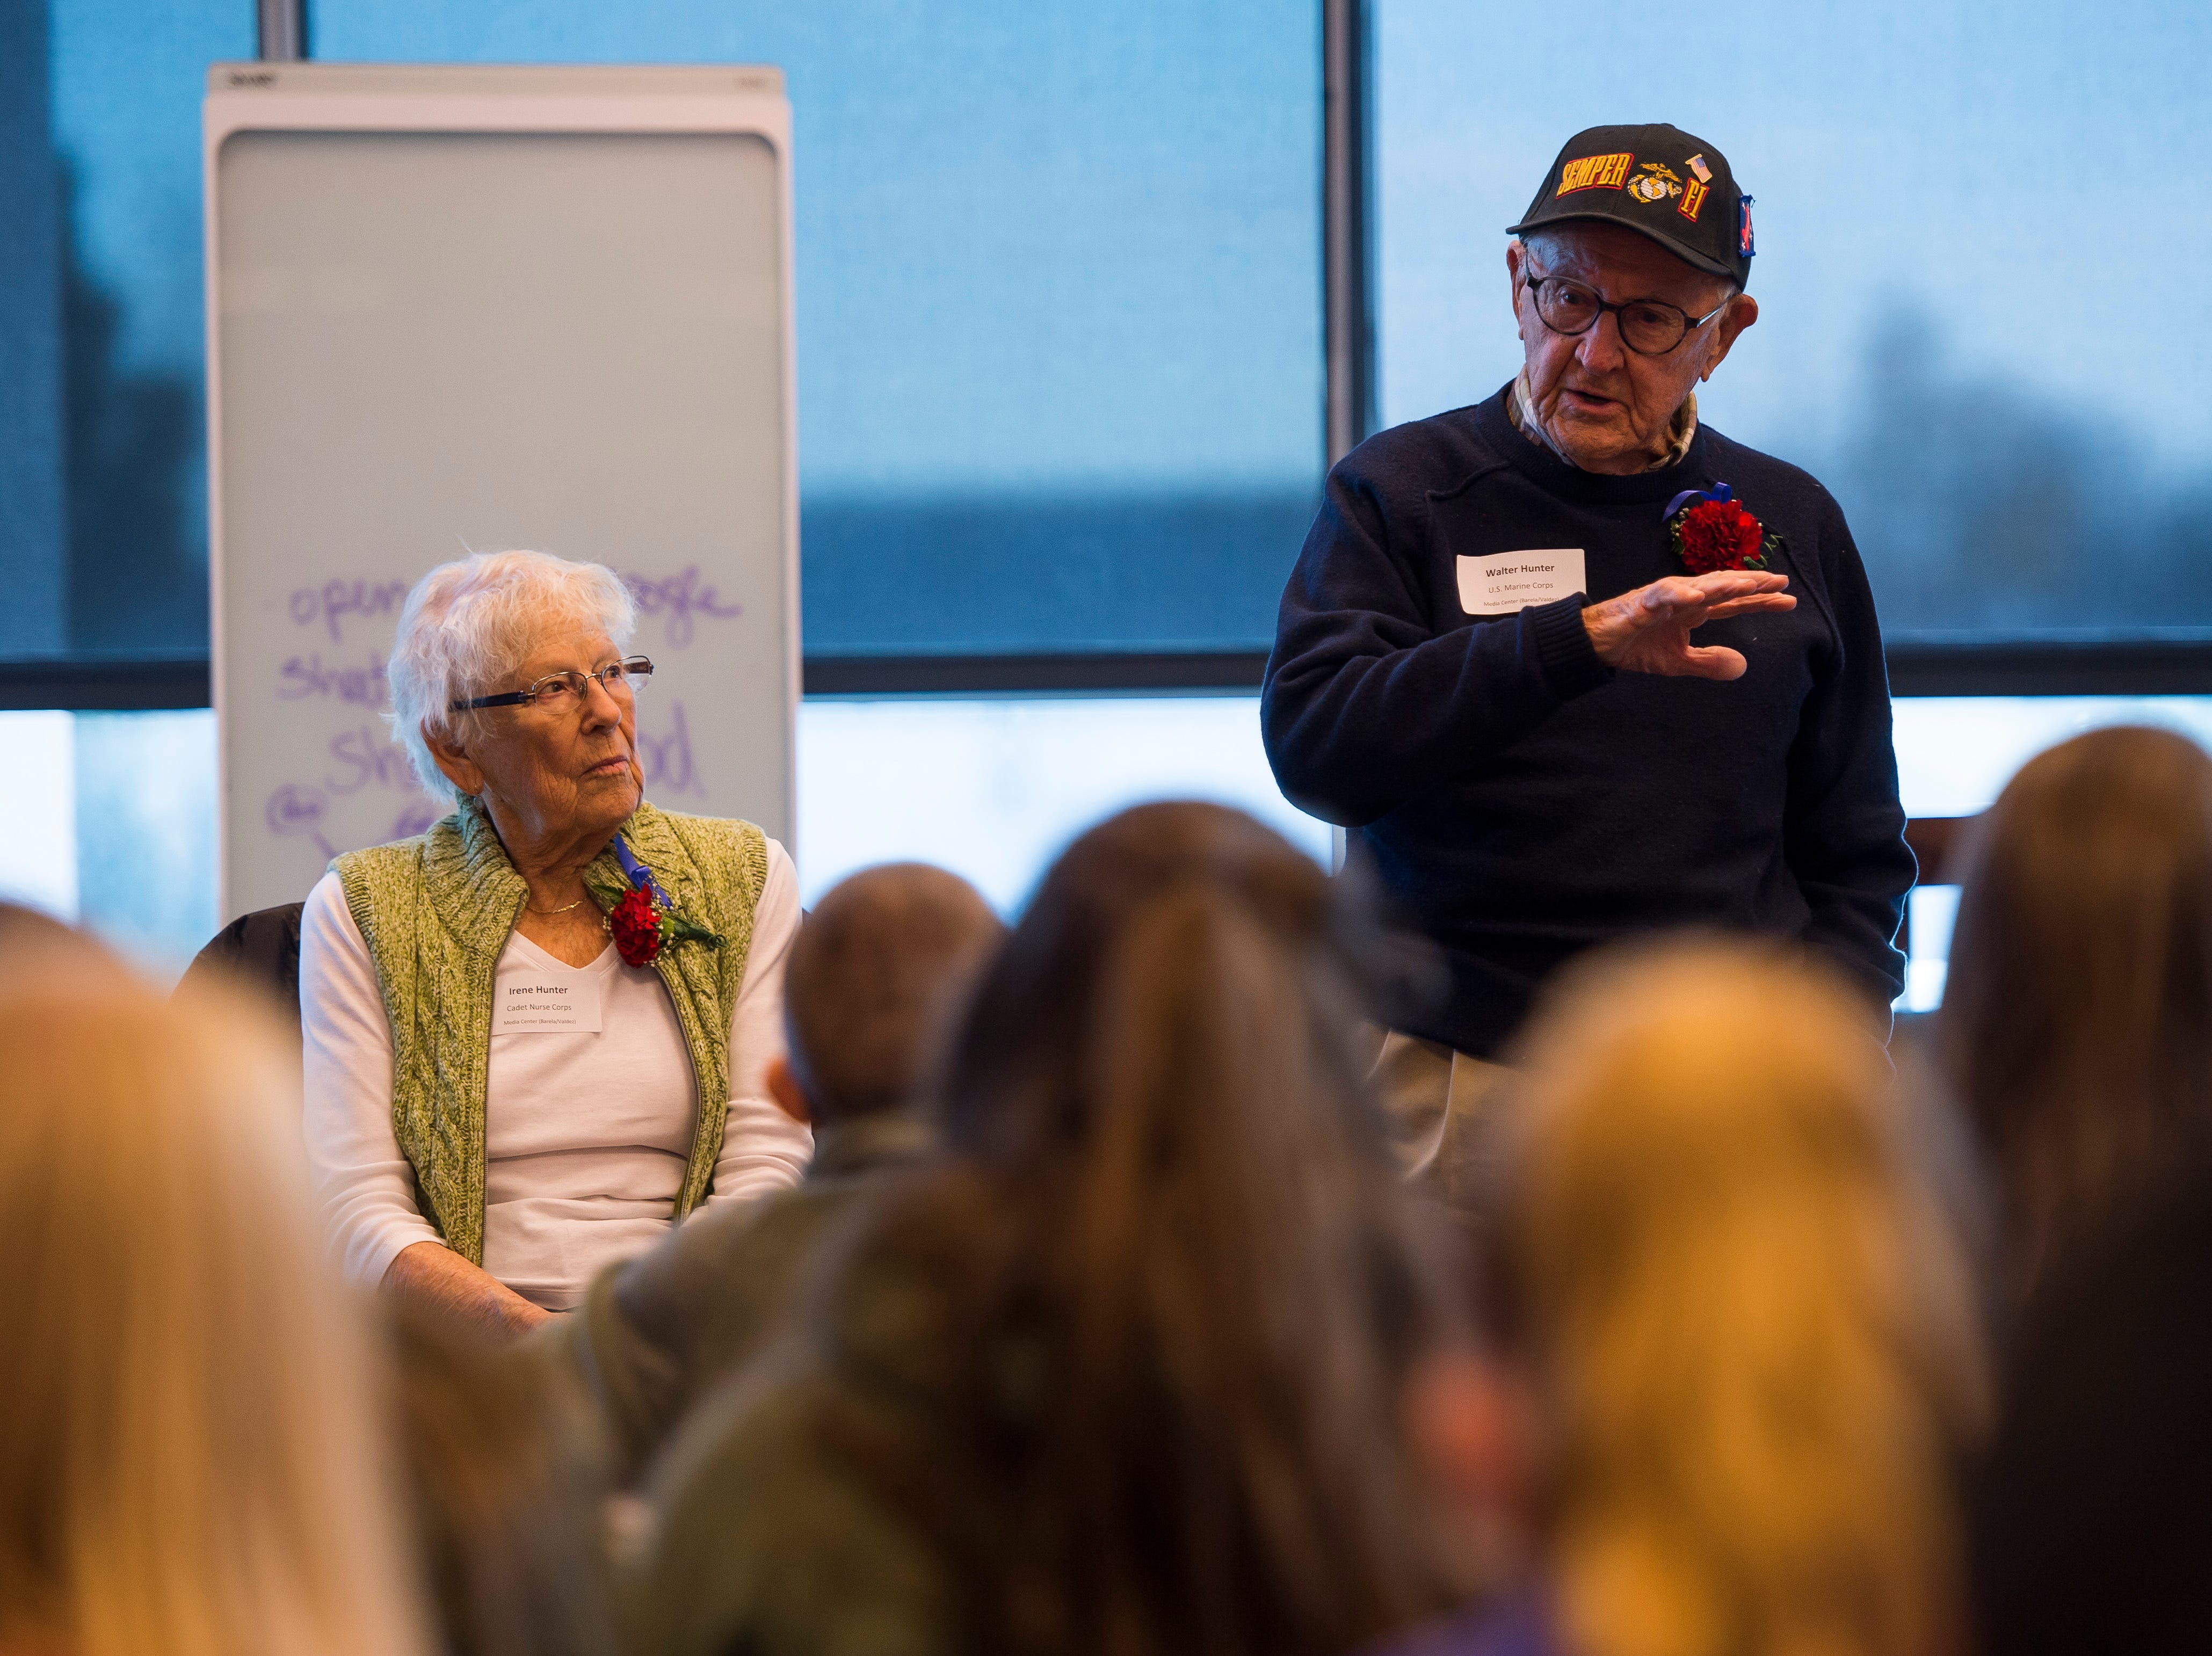 World War II Marine Corp veteran Walter Hunter speaks to a class at Preston Middle School's fourth annual Veterans Day Breakfast while his wife of 72 years and World War II Cadet Nurse Corps veteran Irene Hunter looks on, Friday, Nov. 9, 2018, at Preston Middle School in Fort Collins, Colo.